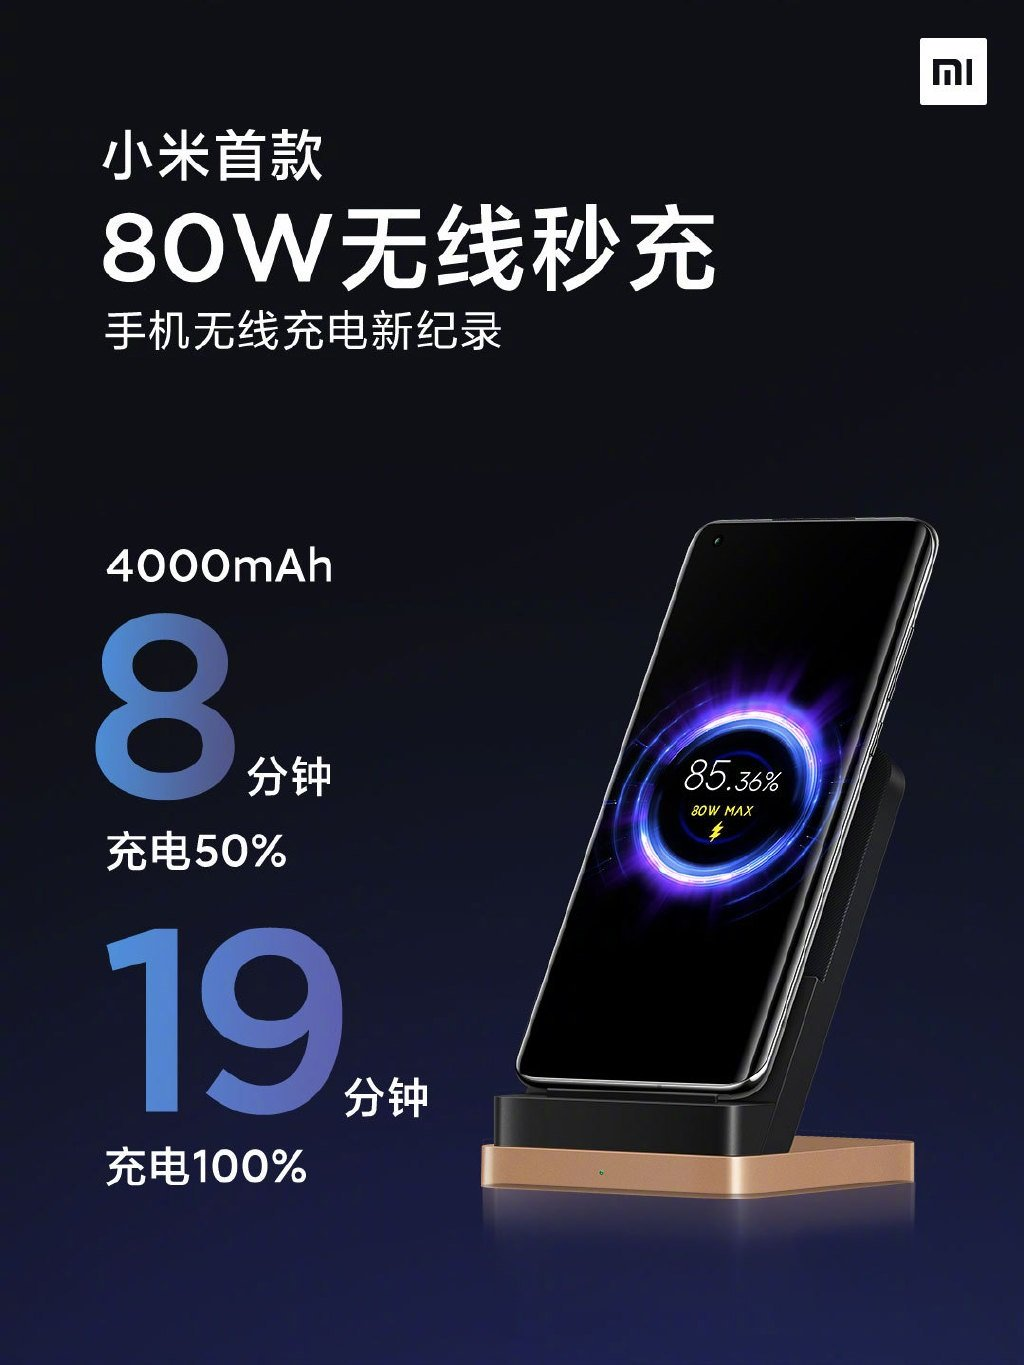 Xiaomi announces 80W wireless charging technology that fully charges 4000mAh battery in 19 minutes